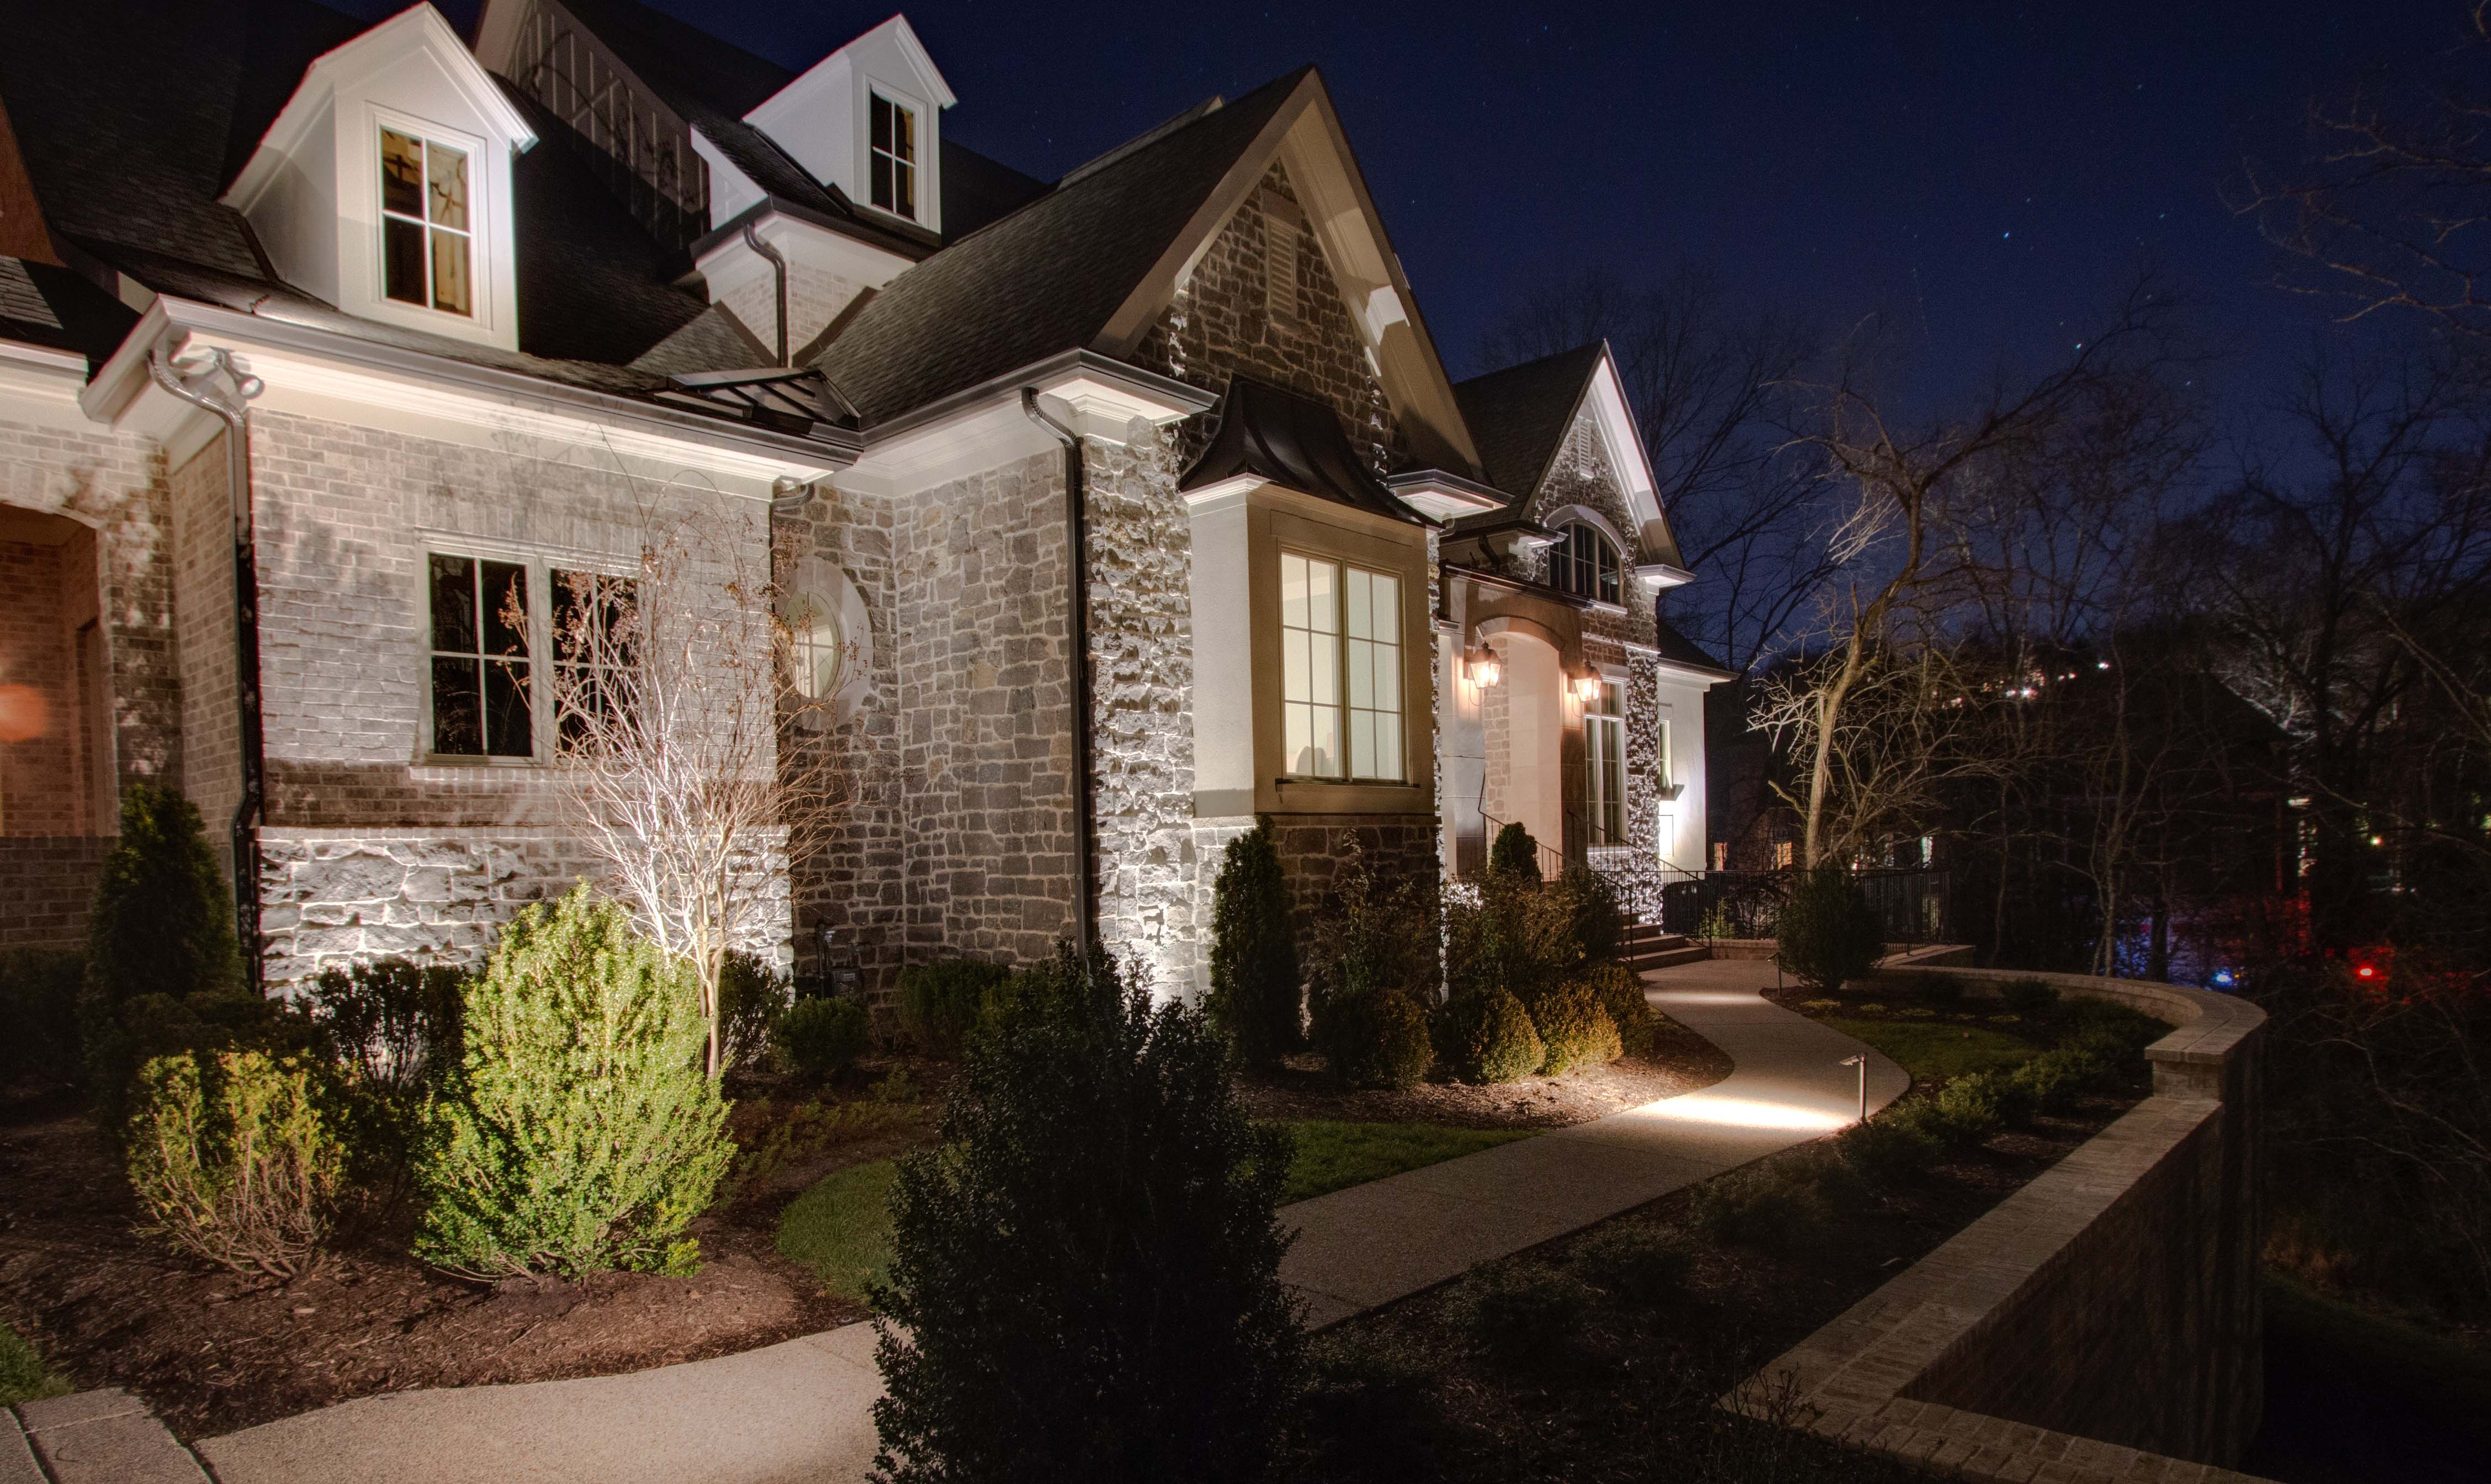 Blog outdoor lighting perspectives with the headache of setting your nashville outdoor lighting timers a thing of the past its impossible not to enjoy daylight savings time this year aloadofball Choice Image